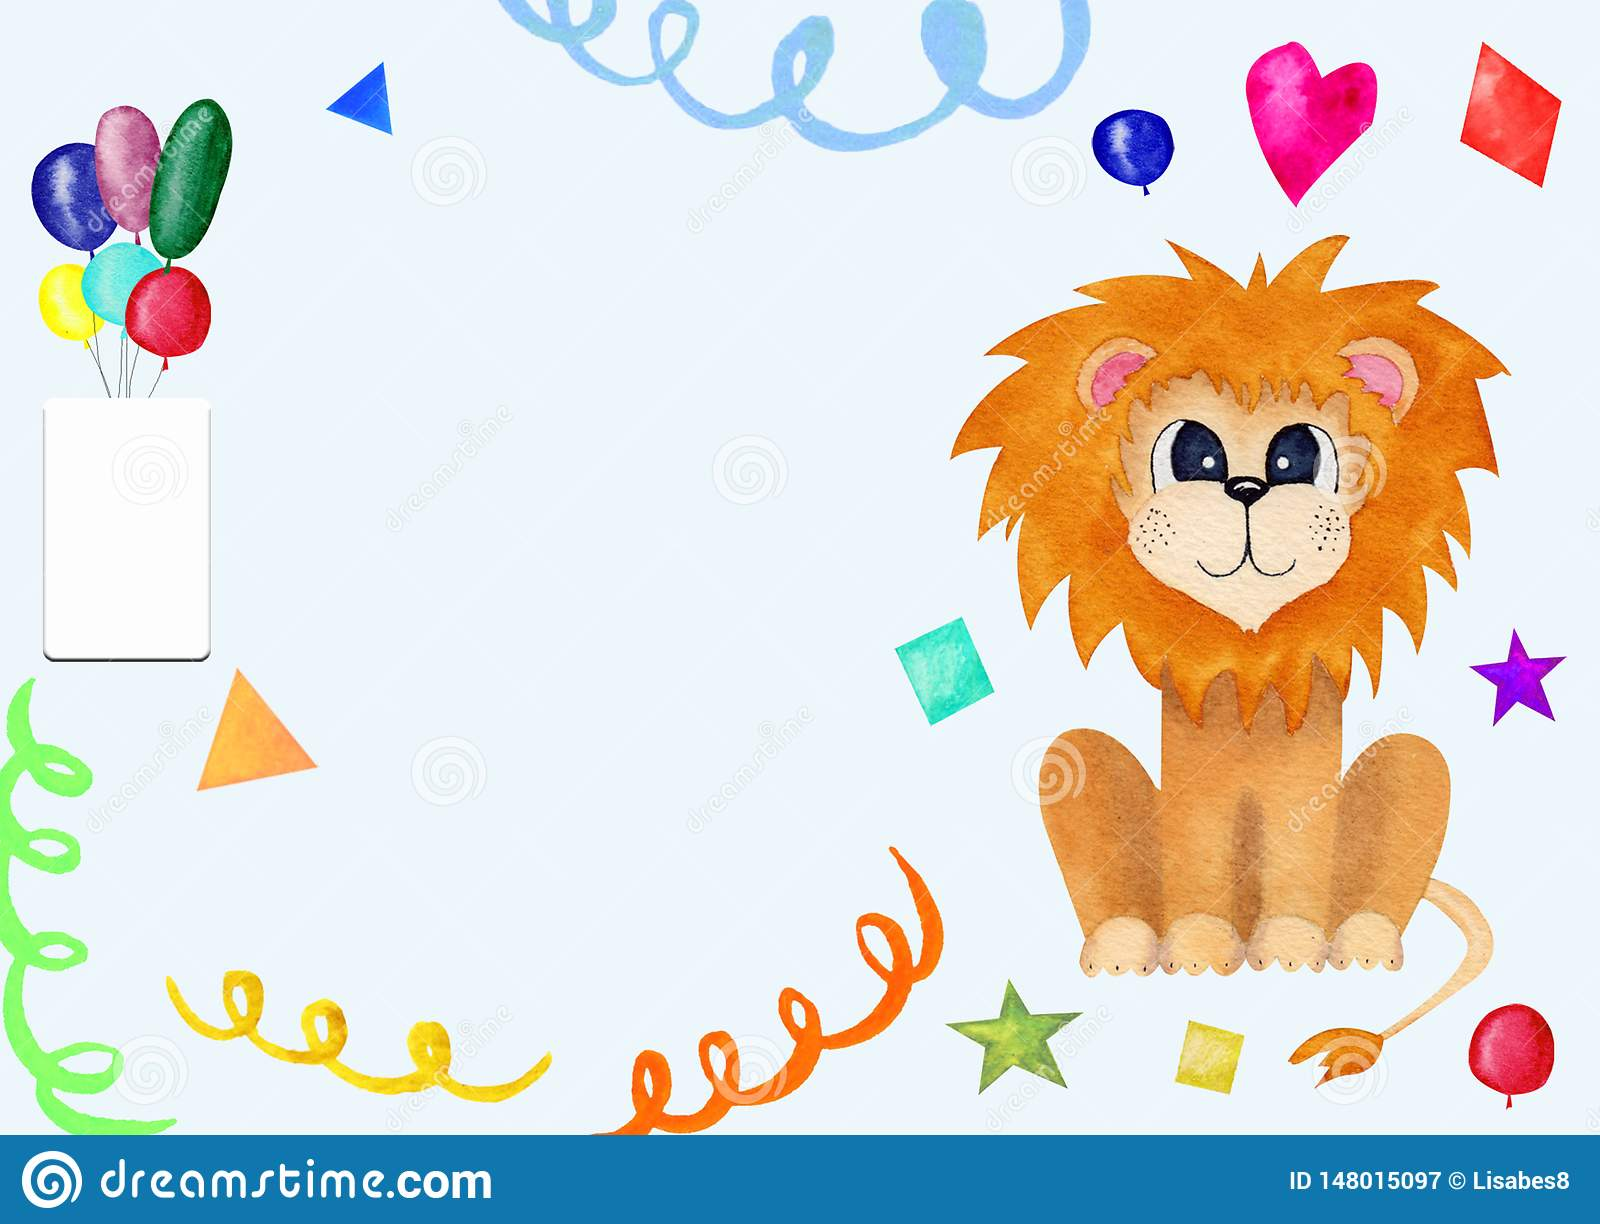 Tremendous Cute Greeting Card For Kids With Lion Birthday Invitation With Funny Birthday Cards Online Fluifree Goldxyz